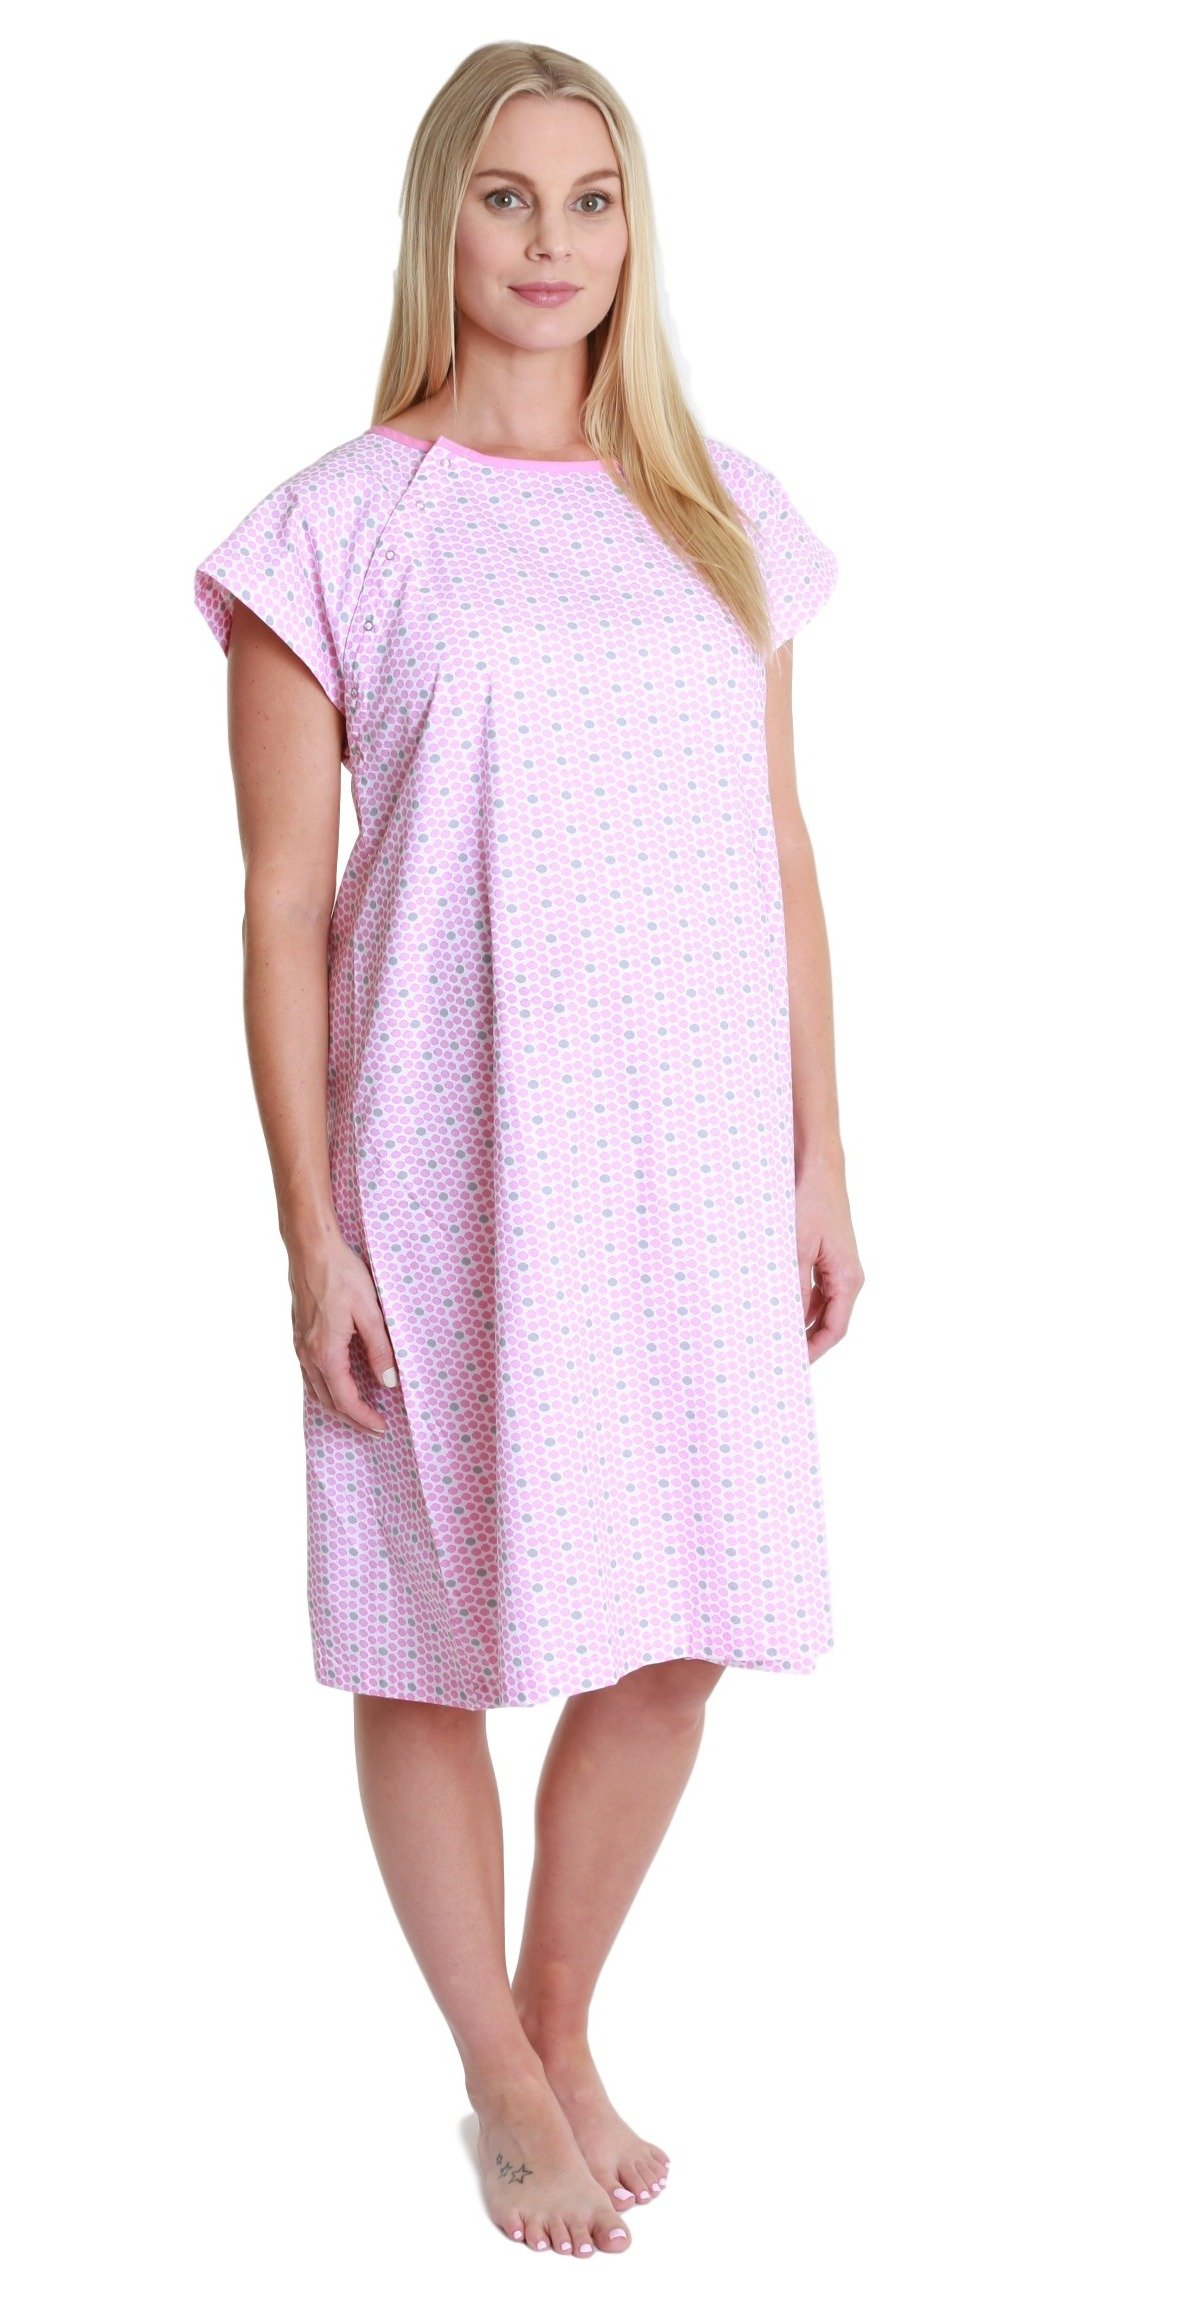 Gownies Hospital Patient Gown, Designer (S/M Size 0-10, Chloe)